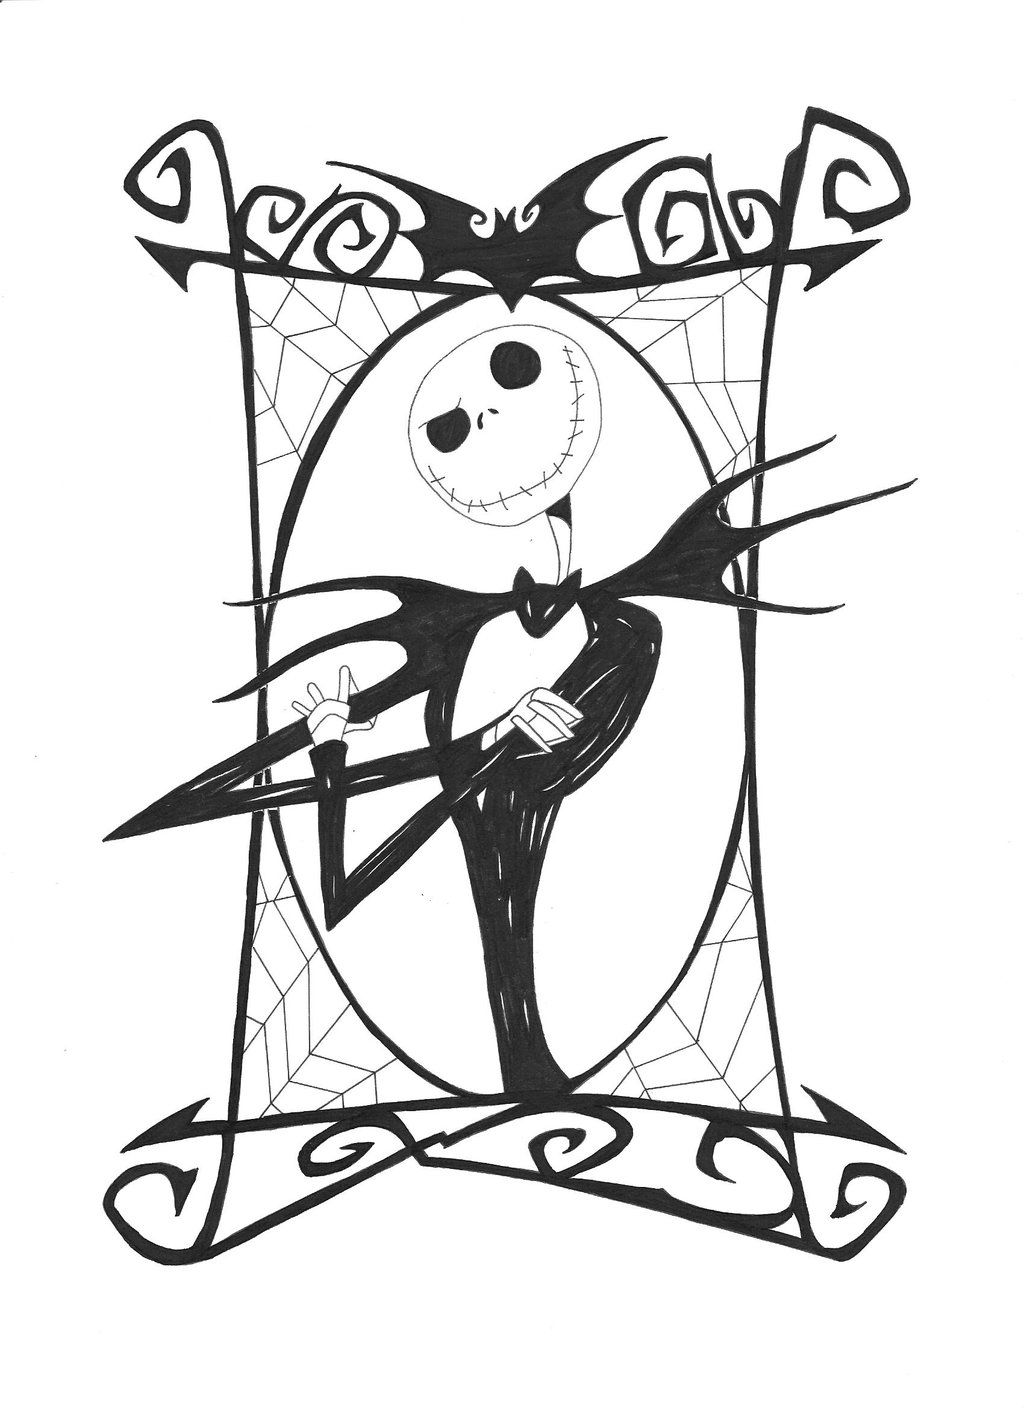 nightmare before christmas silhouette - Google Search | Jack ...